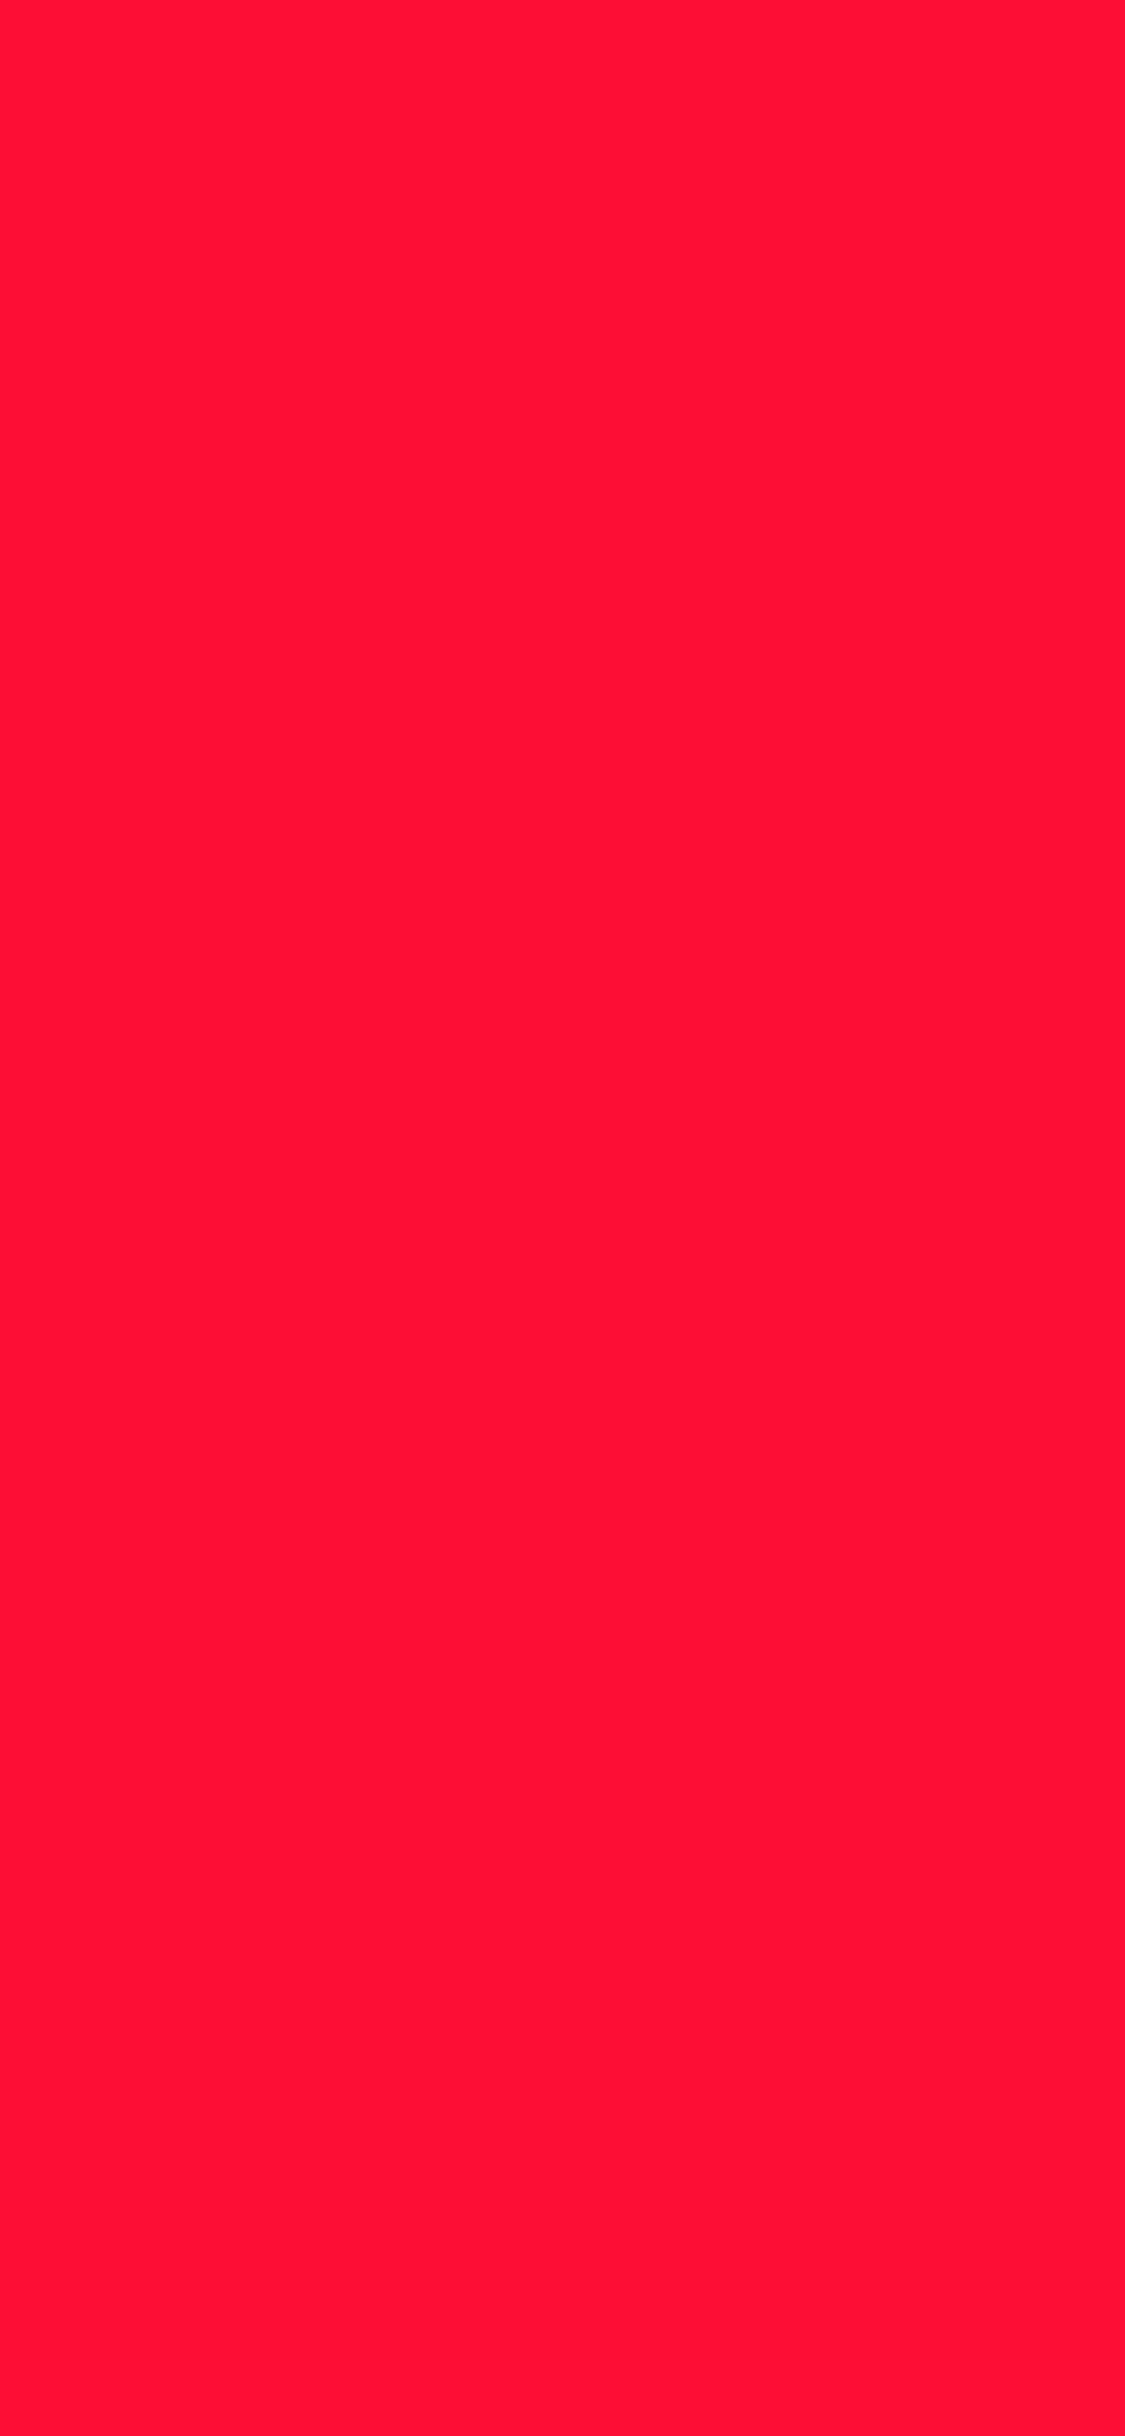 1125x2436 Tractor Red Solid Color Background